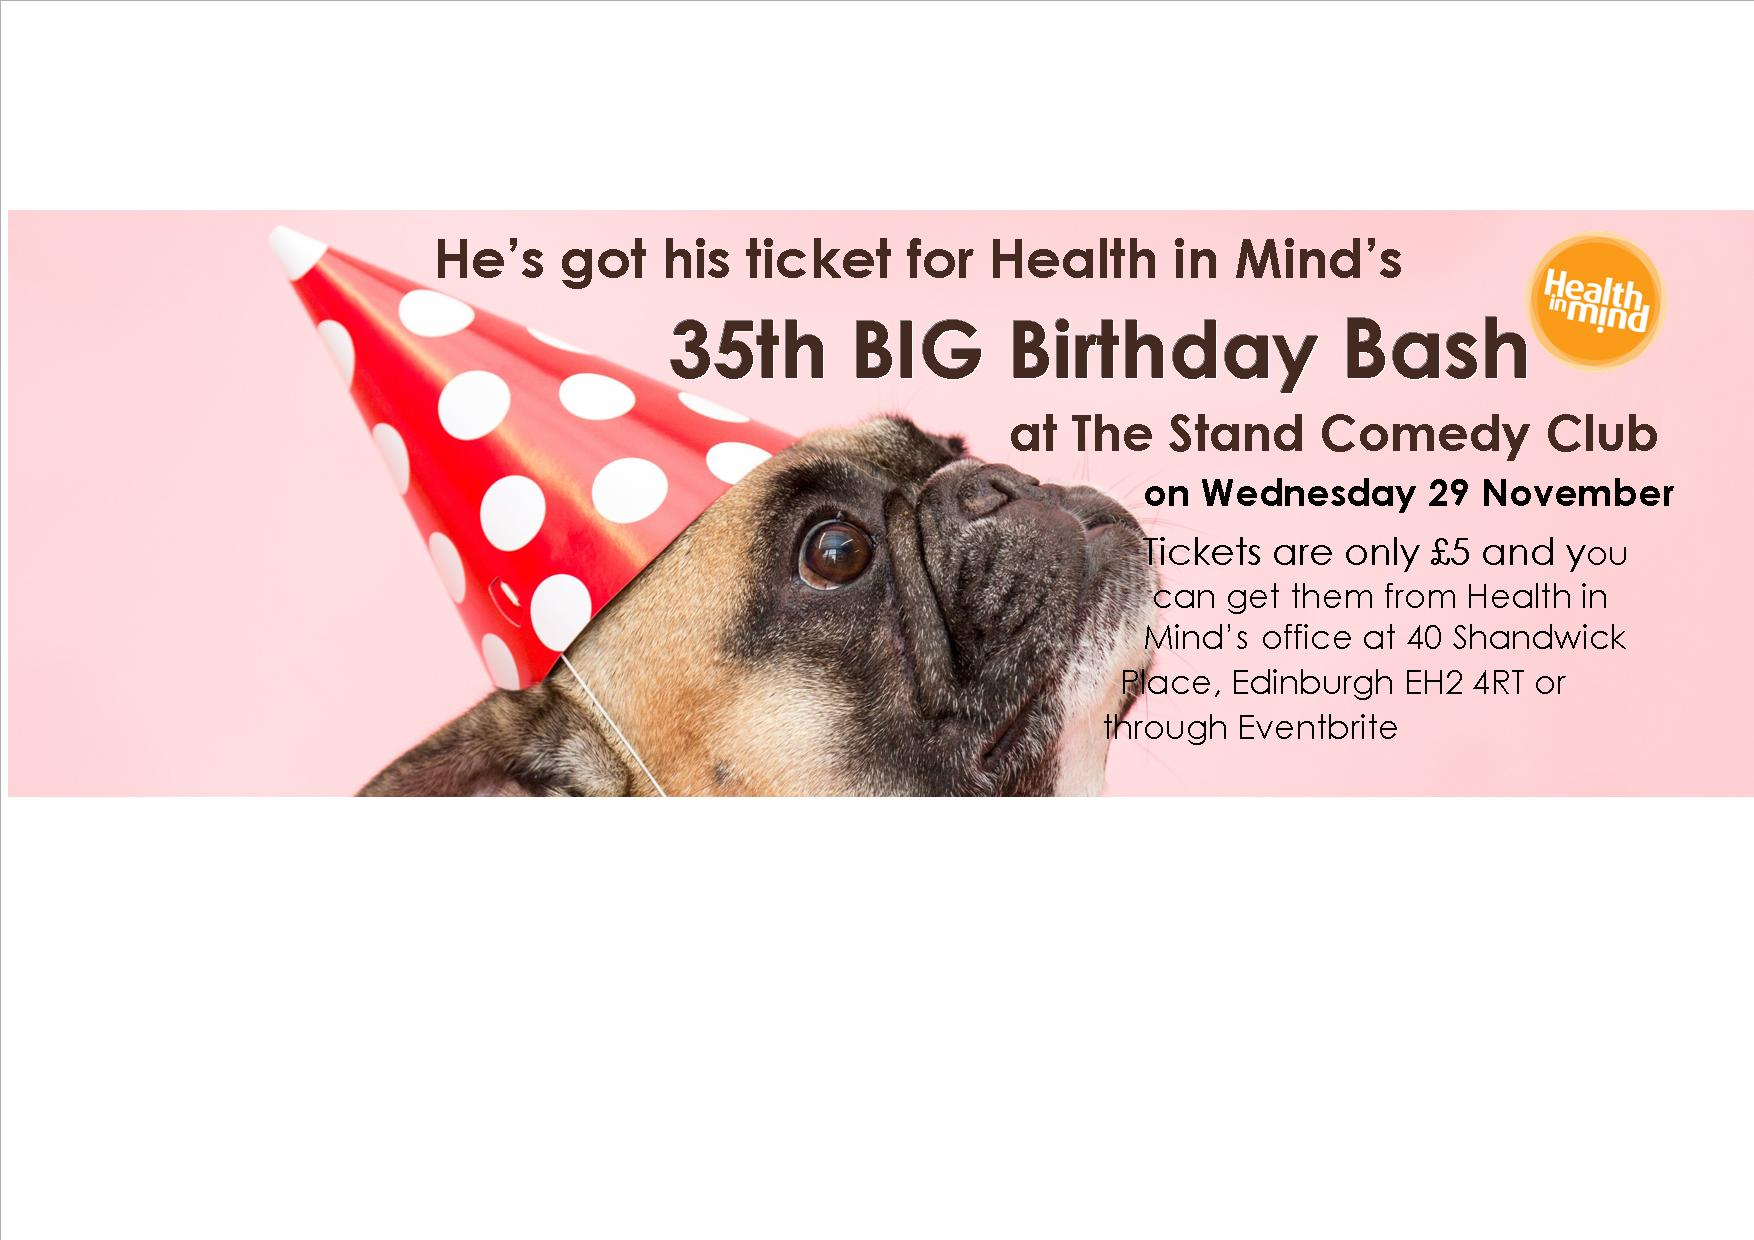 Media release: Charity celebrates anniversary with a Big Birthday Bash Comedy Night